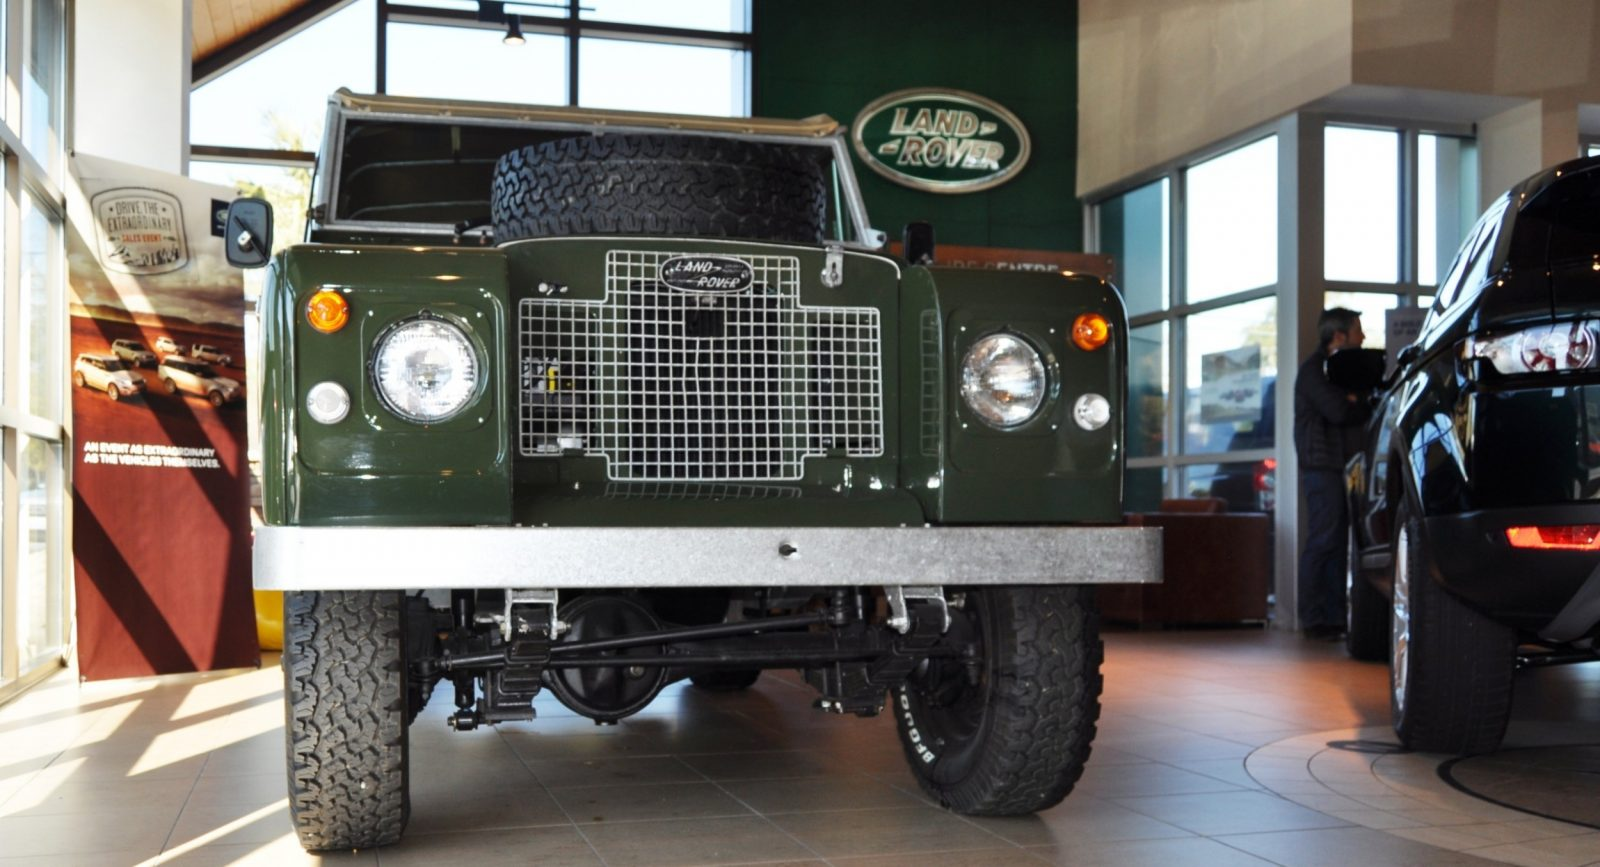 Video Walk-around and Photos - Near-Mint 1969 Land Rover Series II Defender at Baker LR in CHarleston 7